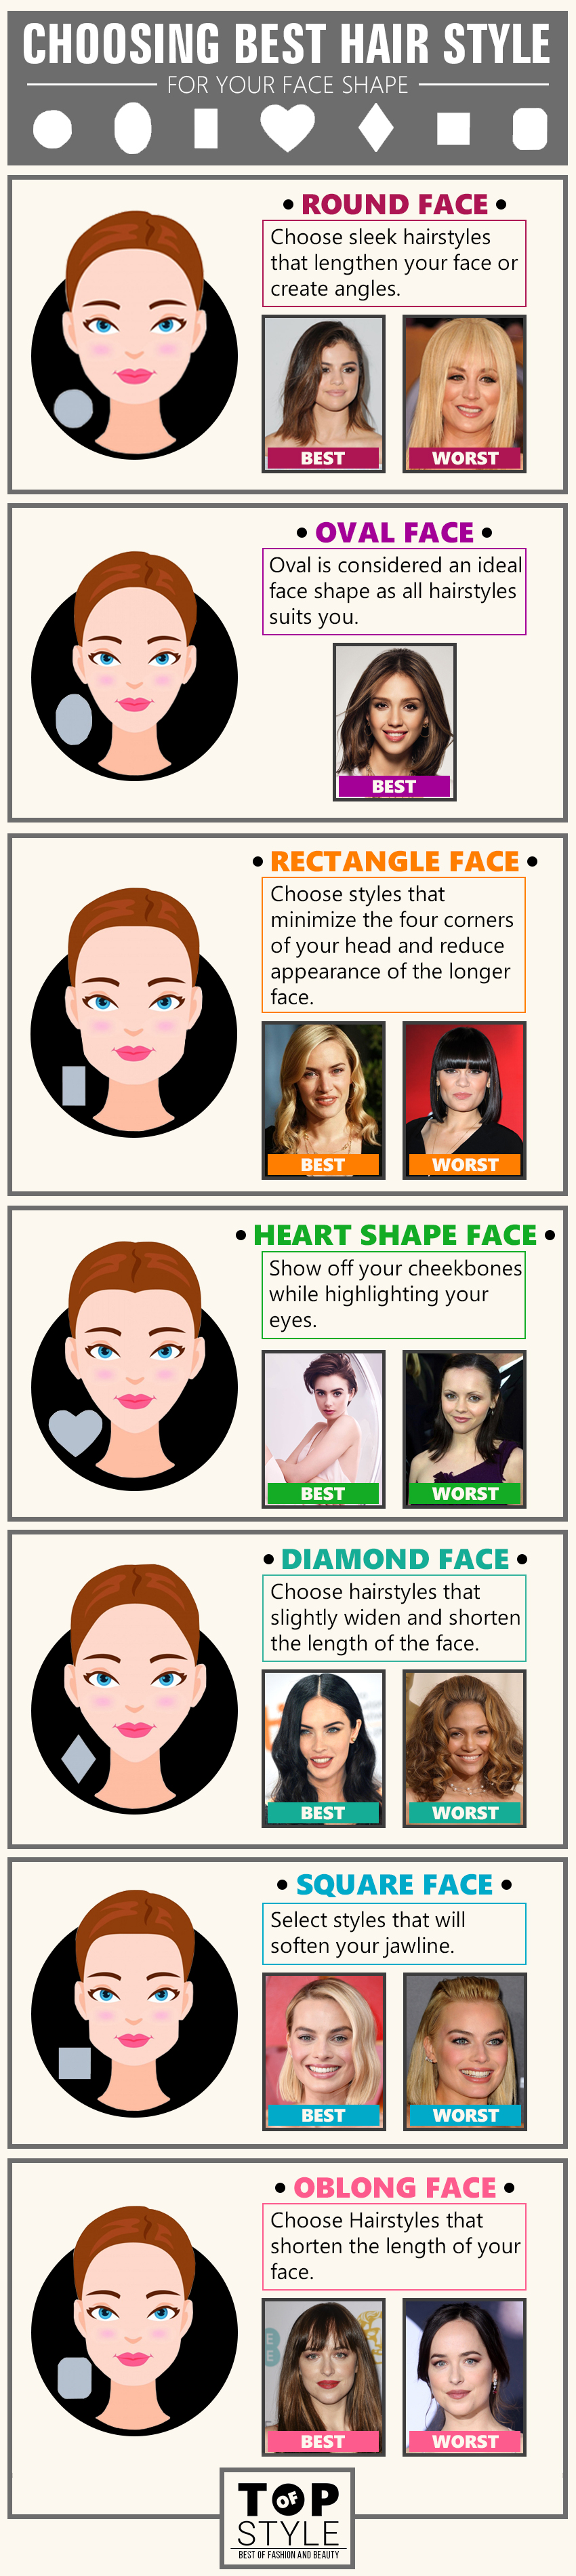 Best & Worst Hairstyles for Different Face Shapes of Women - TopOfStyle Blog